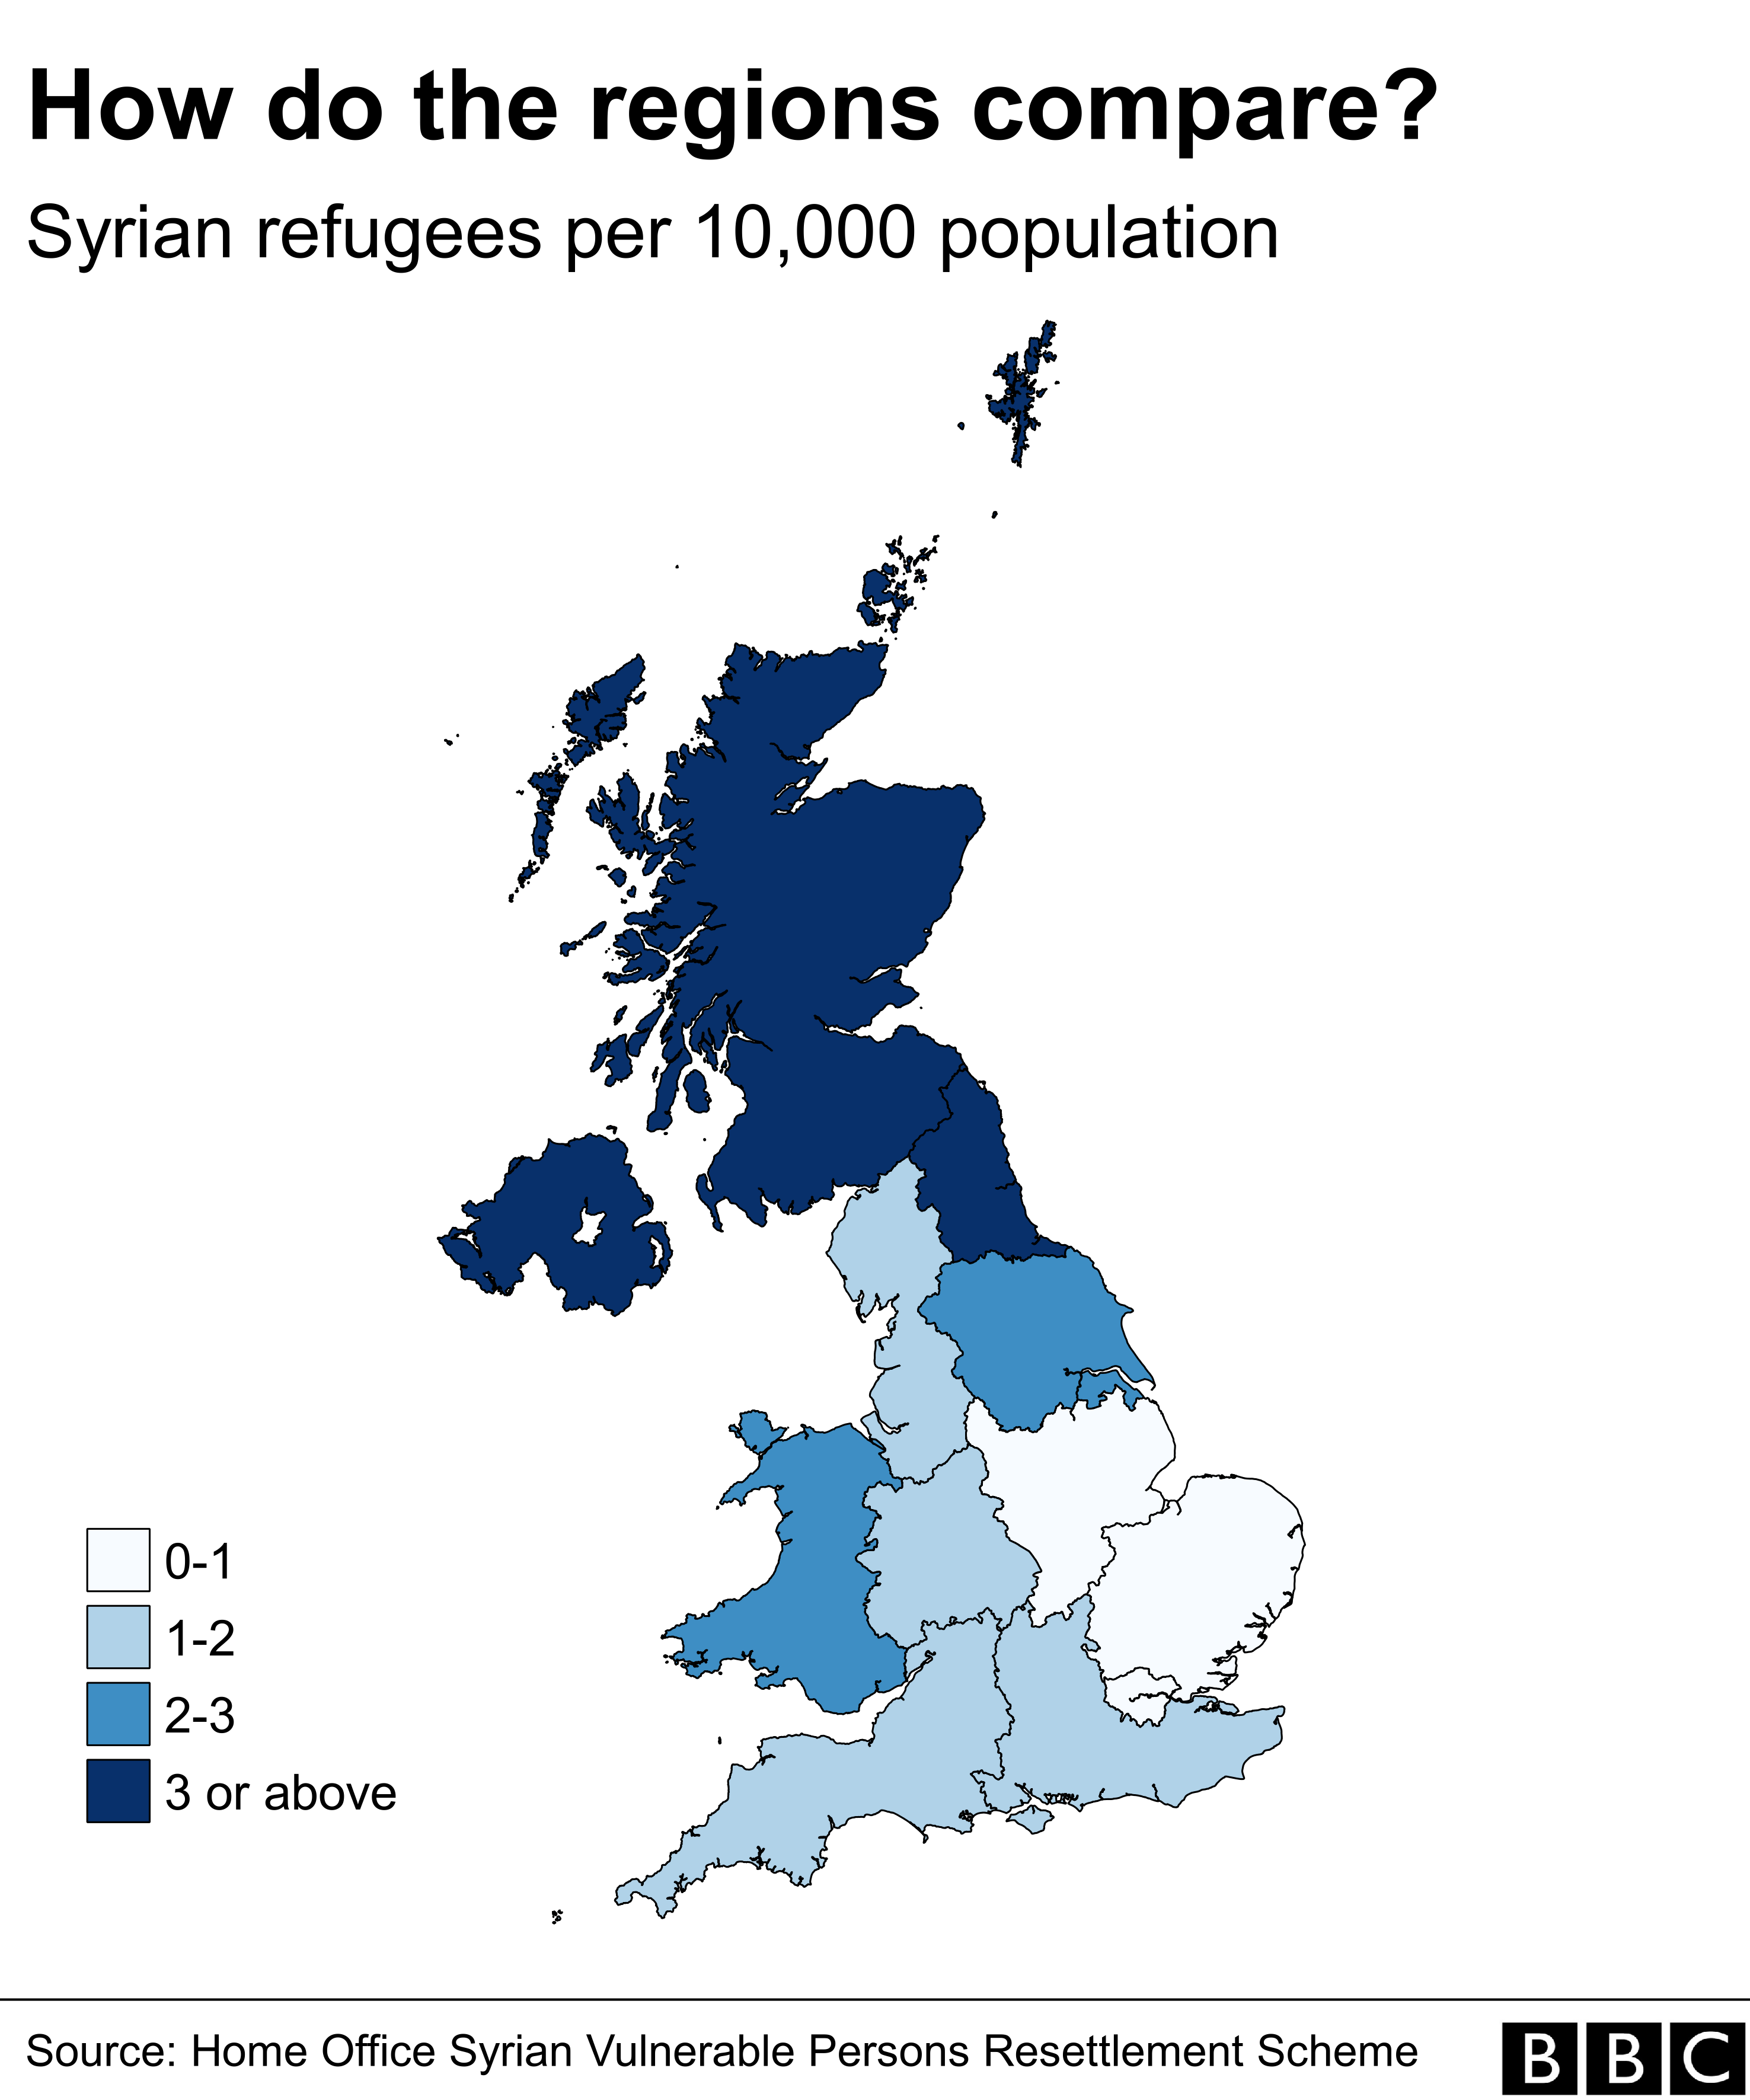 Map showing the settlement of refugees by region